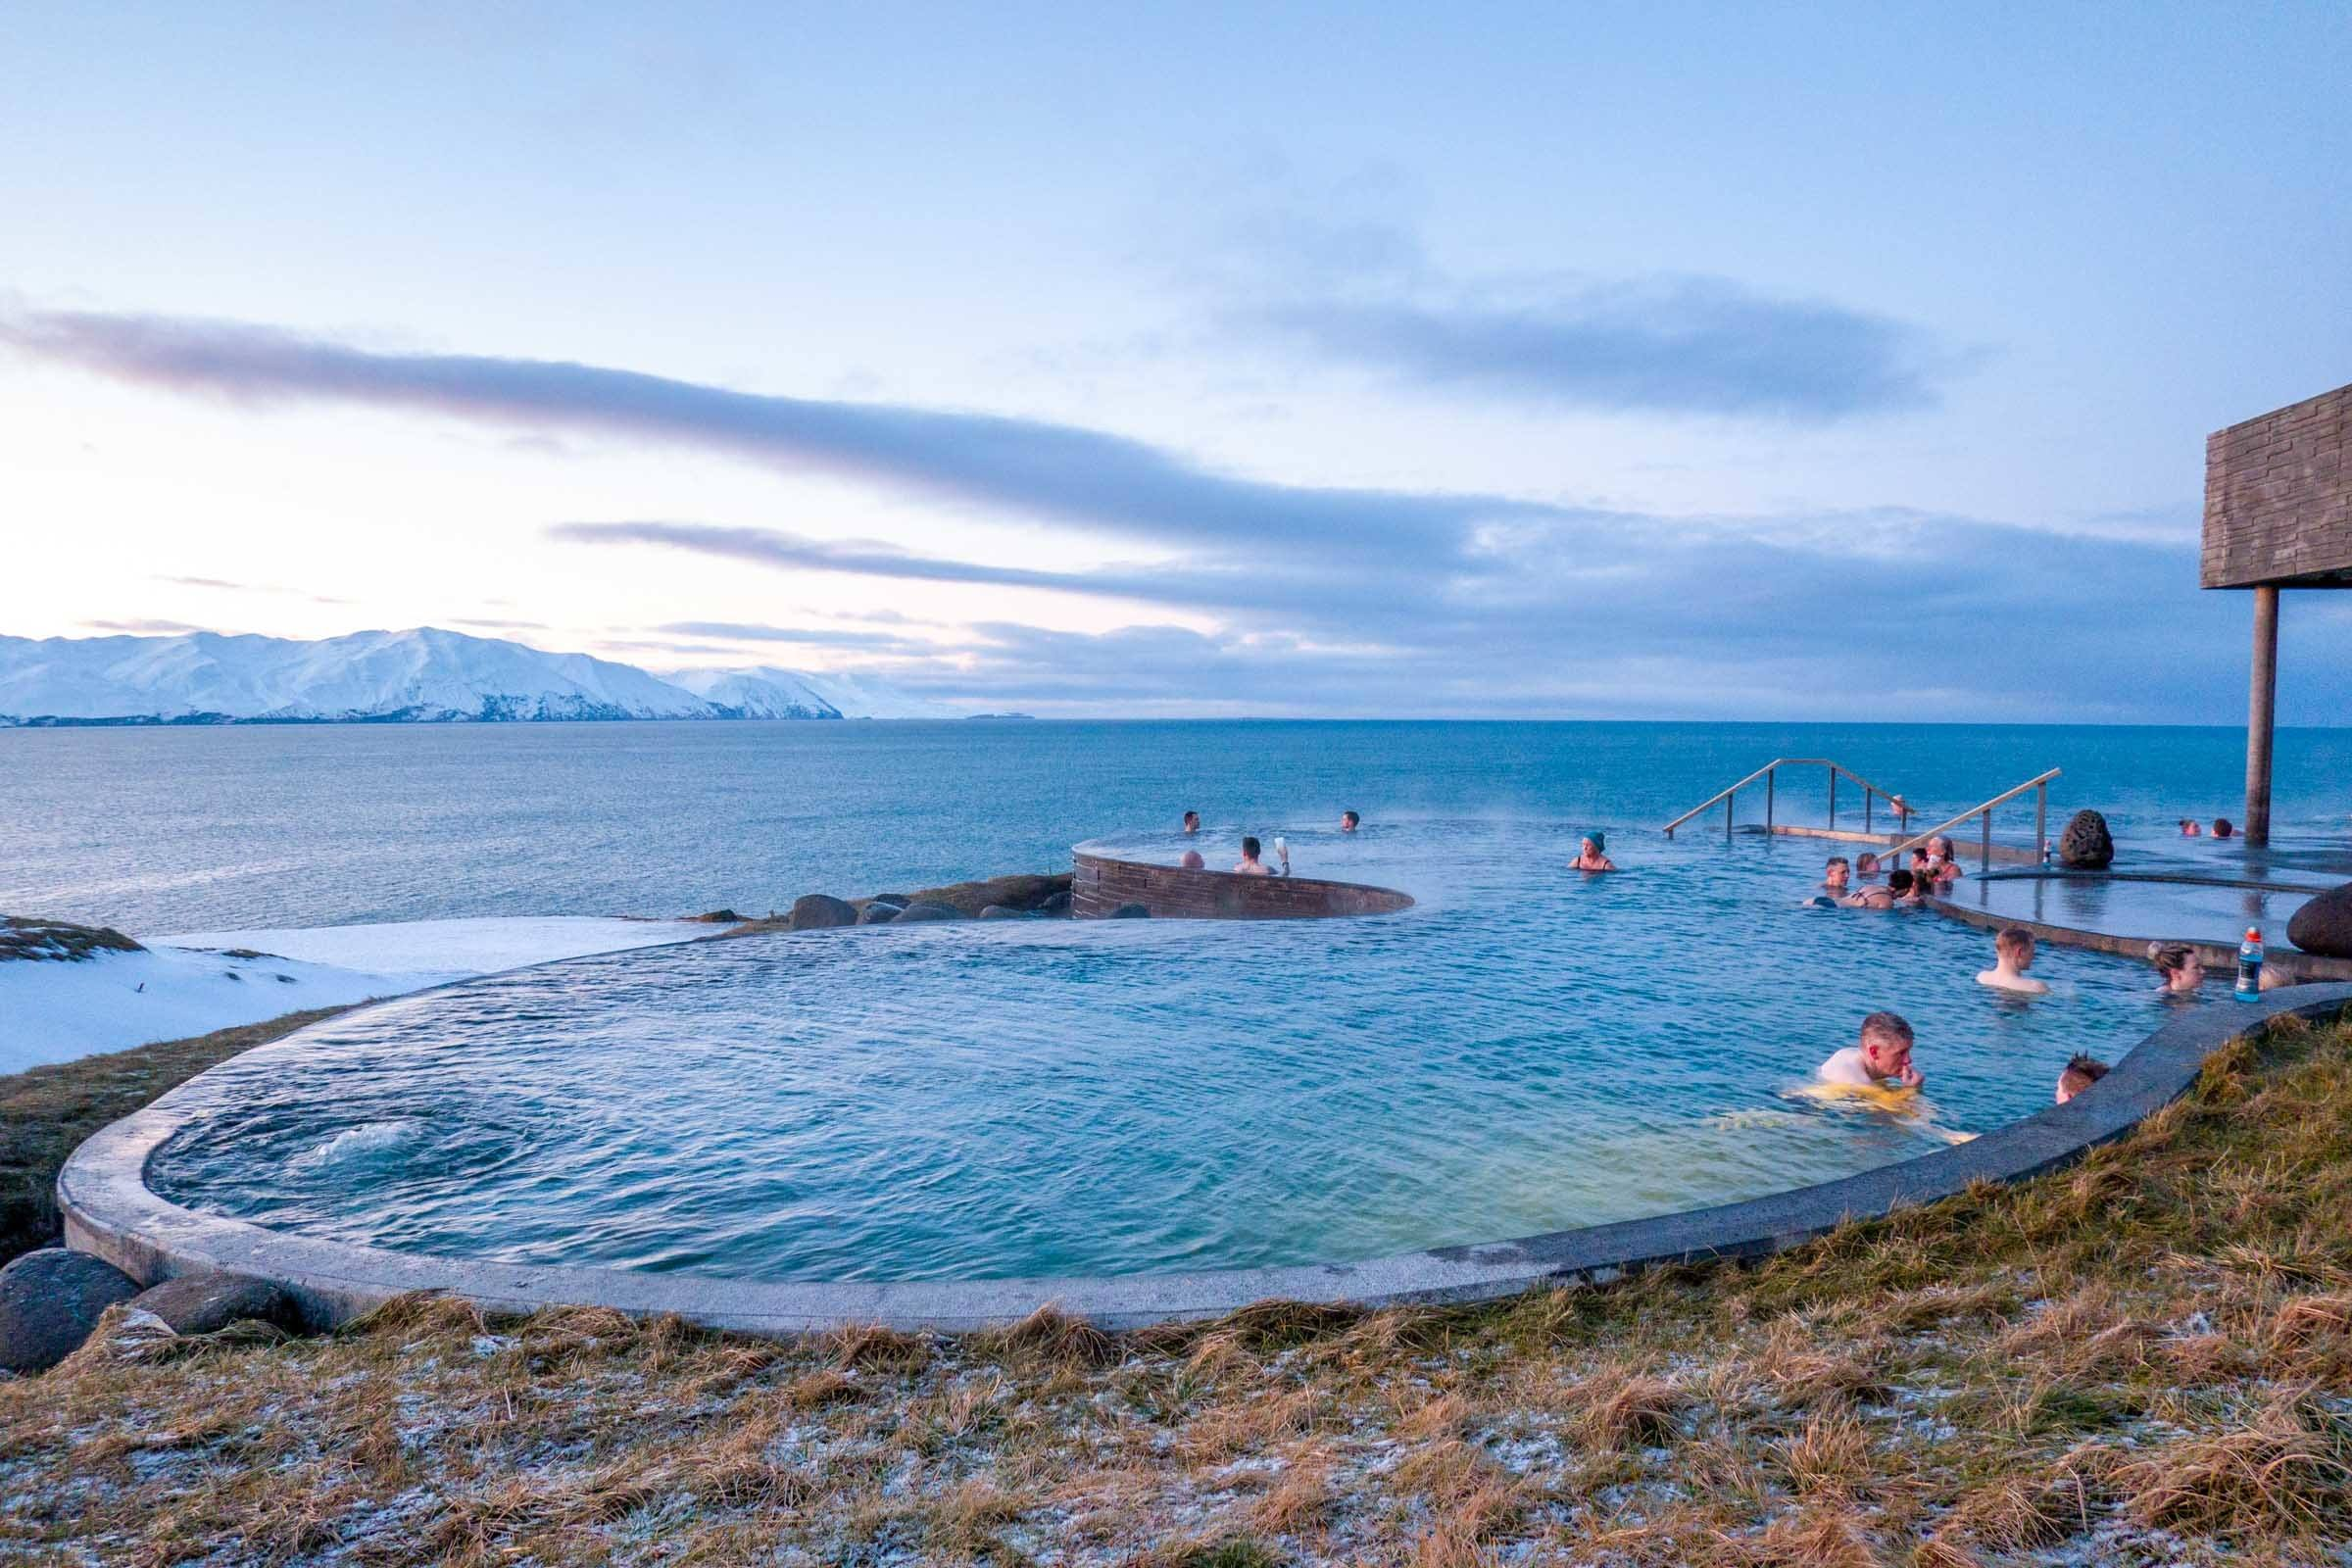 Infinity pools at the Husavik GeoSea geothermal baths close early in the winter